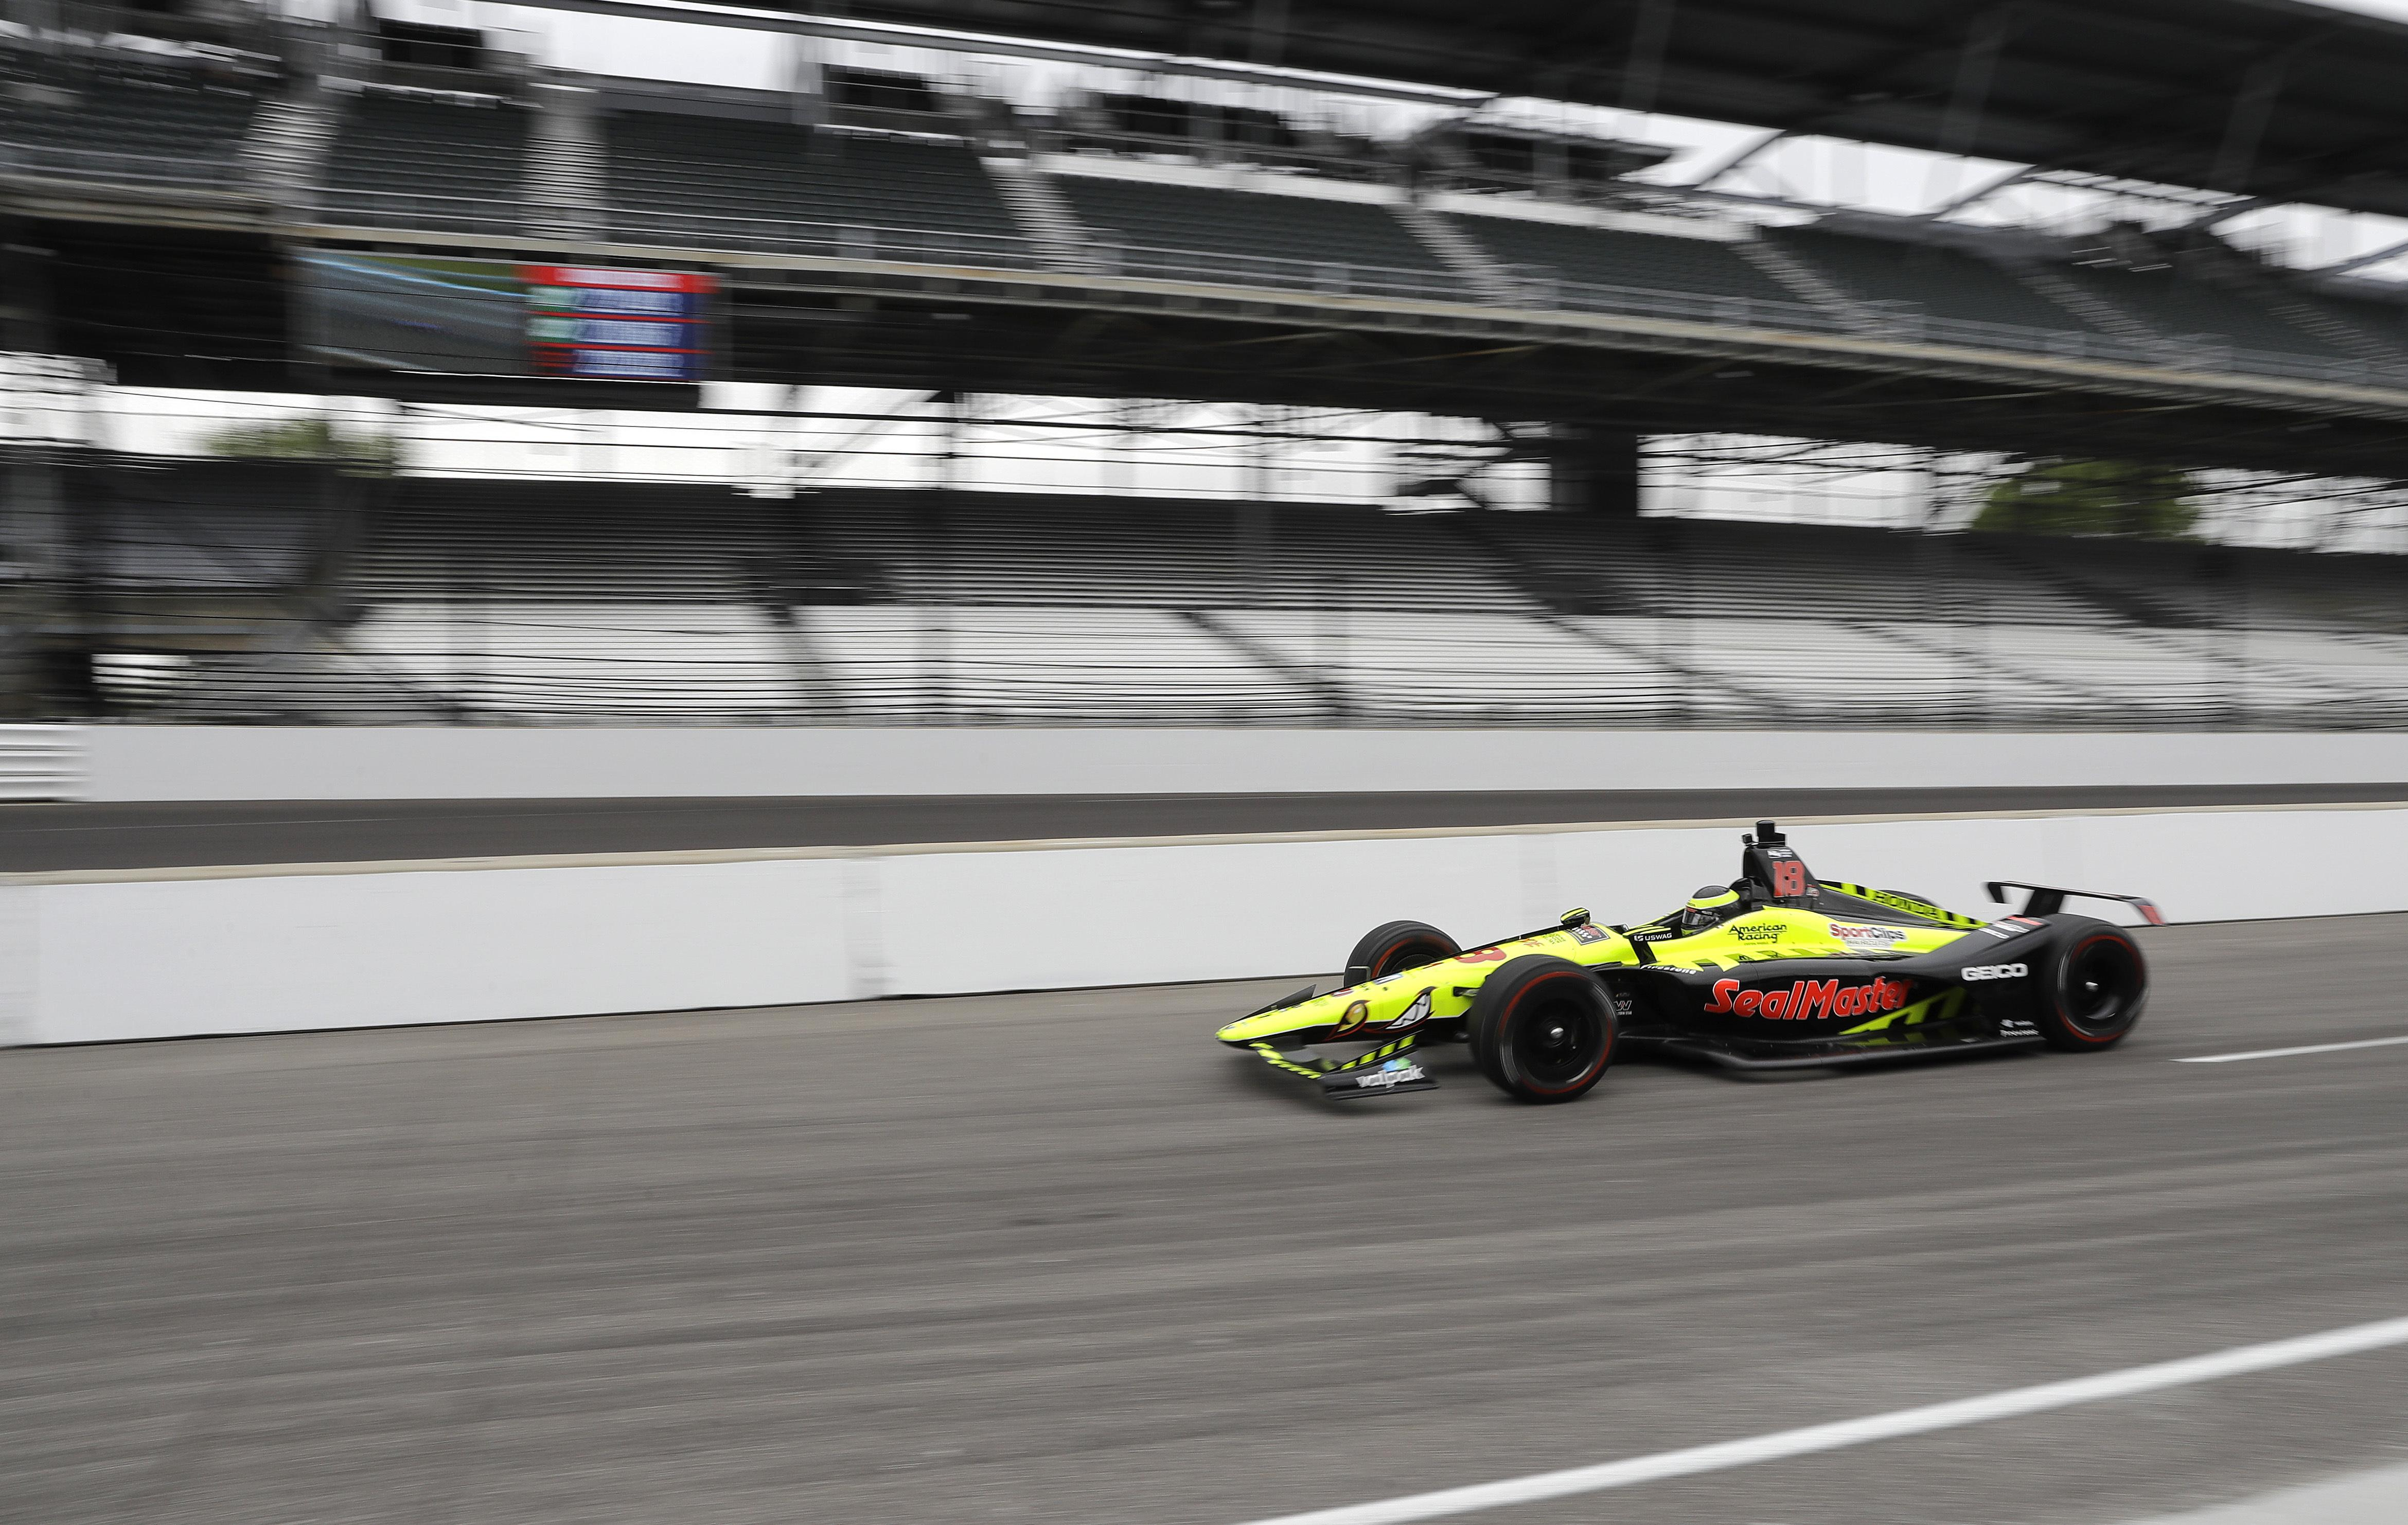 Marco Andretti tops speed chart again in Indianapolis 500 practice ...